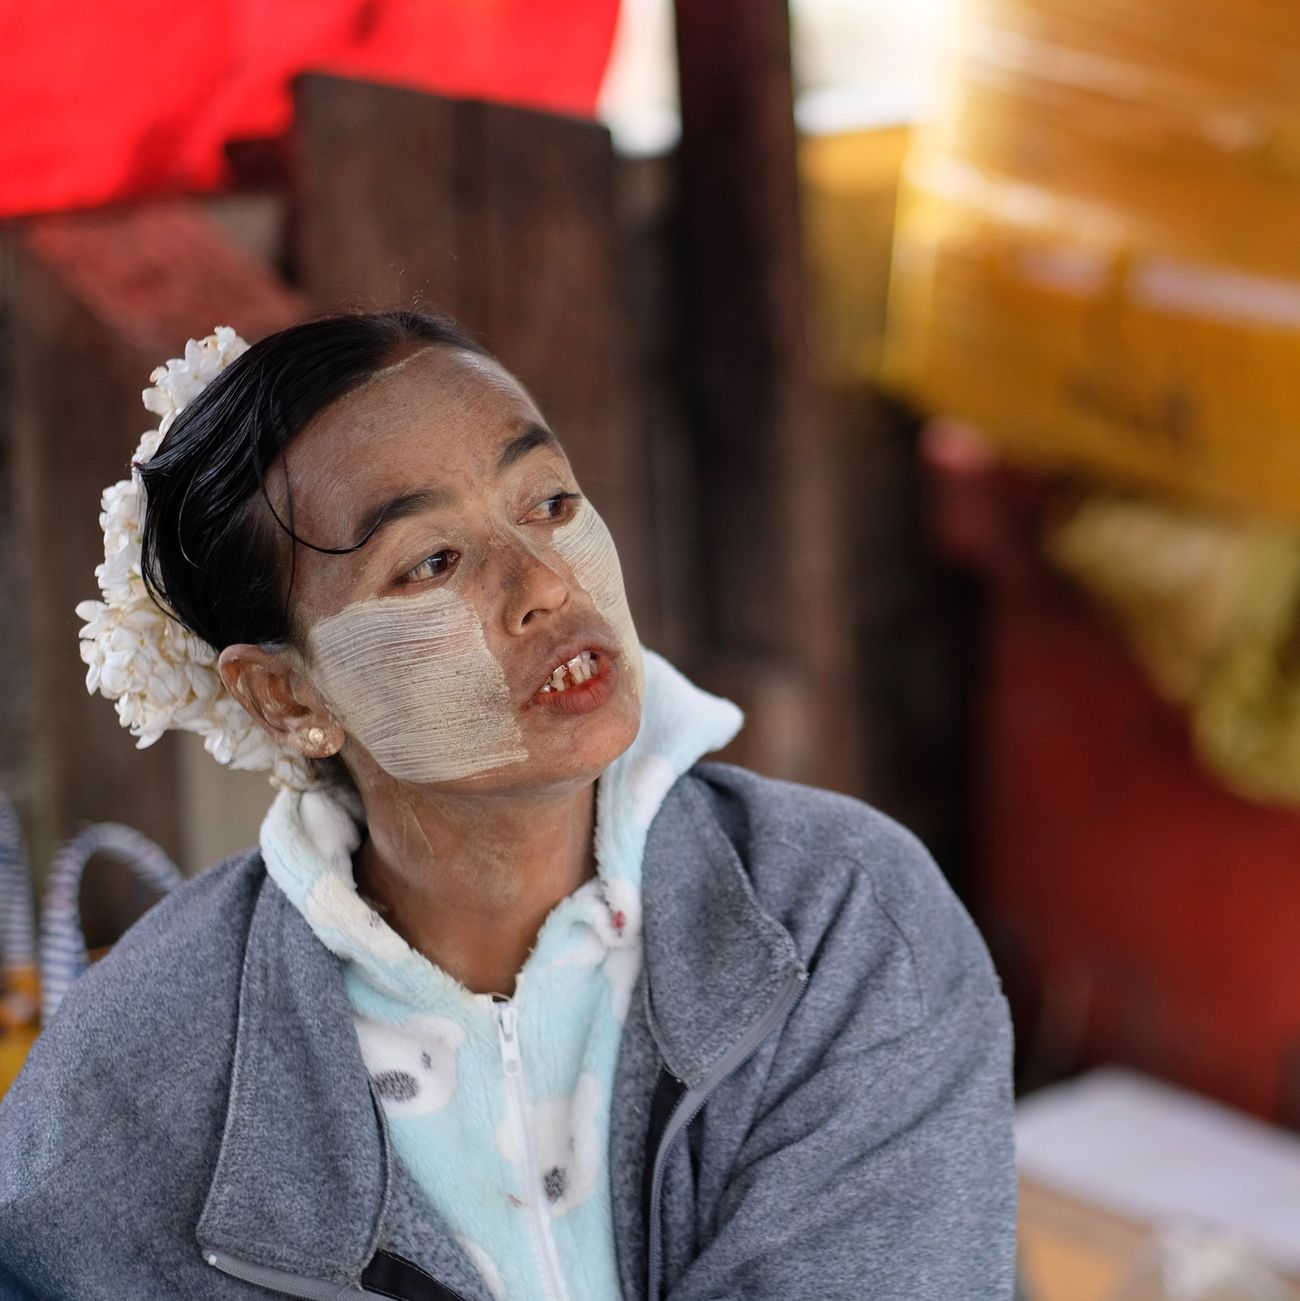 Portrait Woman Face Paint Face Makeup Tradition Cultures Thanaka Travel One Person Focus On Foreground Indoors  Market Market Stall People Day Adult Portraits Portrait Of A Woman EyeEm Best Shots EyeEm Gallery Check This Out Popular Photos in Nyaungshwe , Myanmar